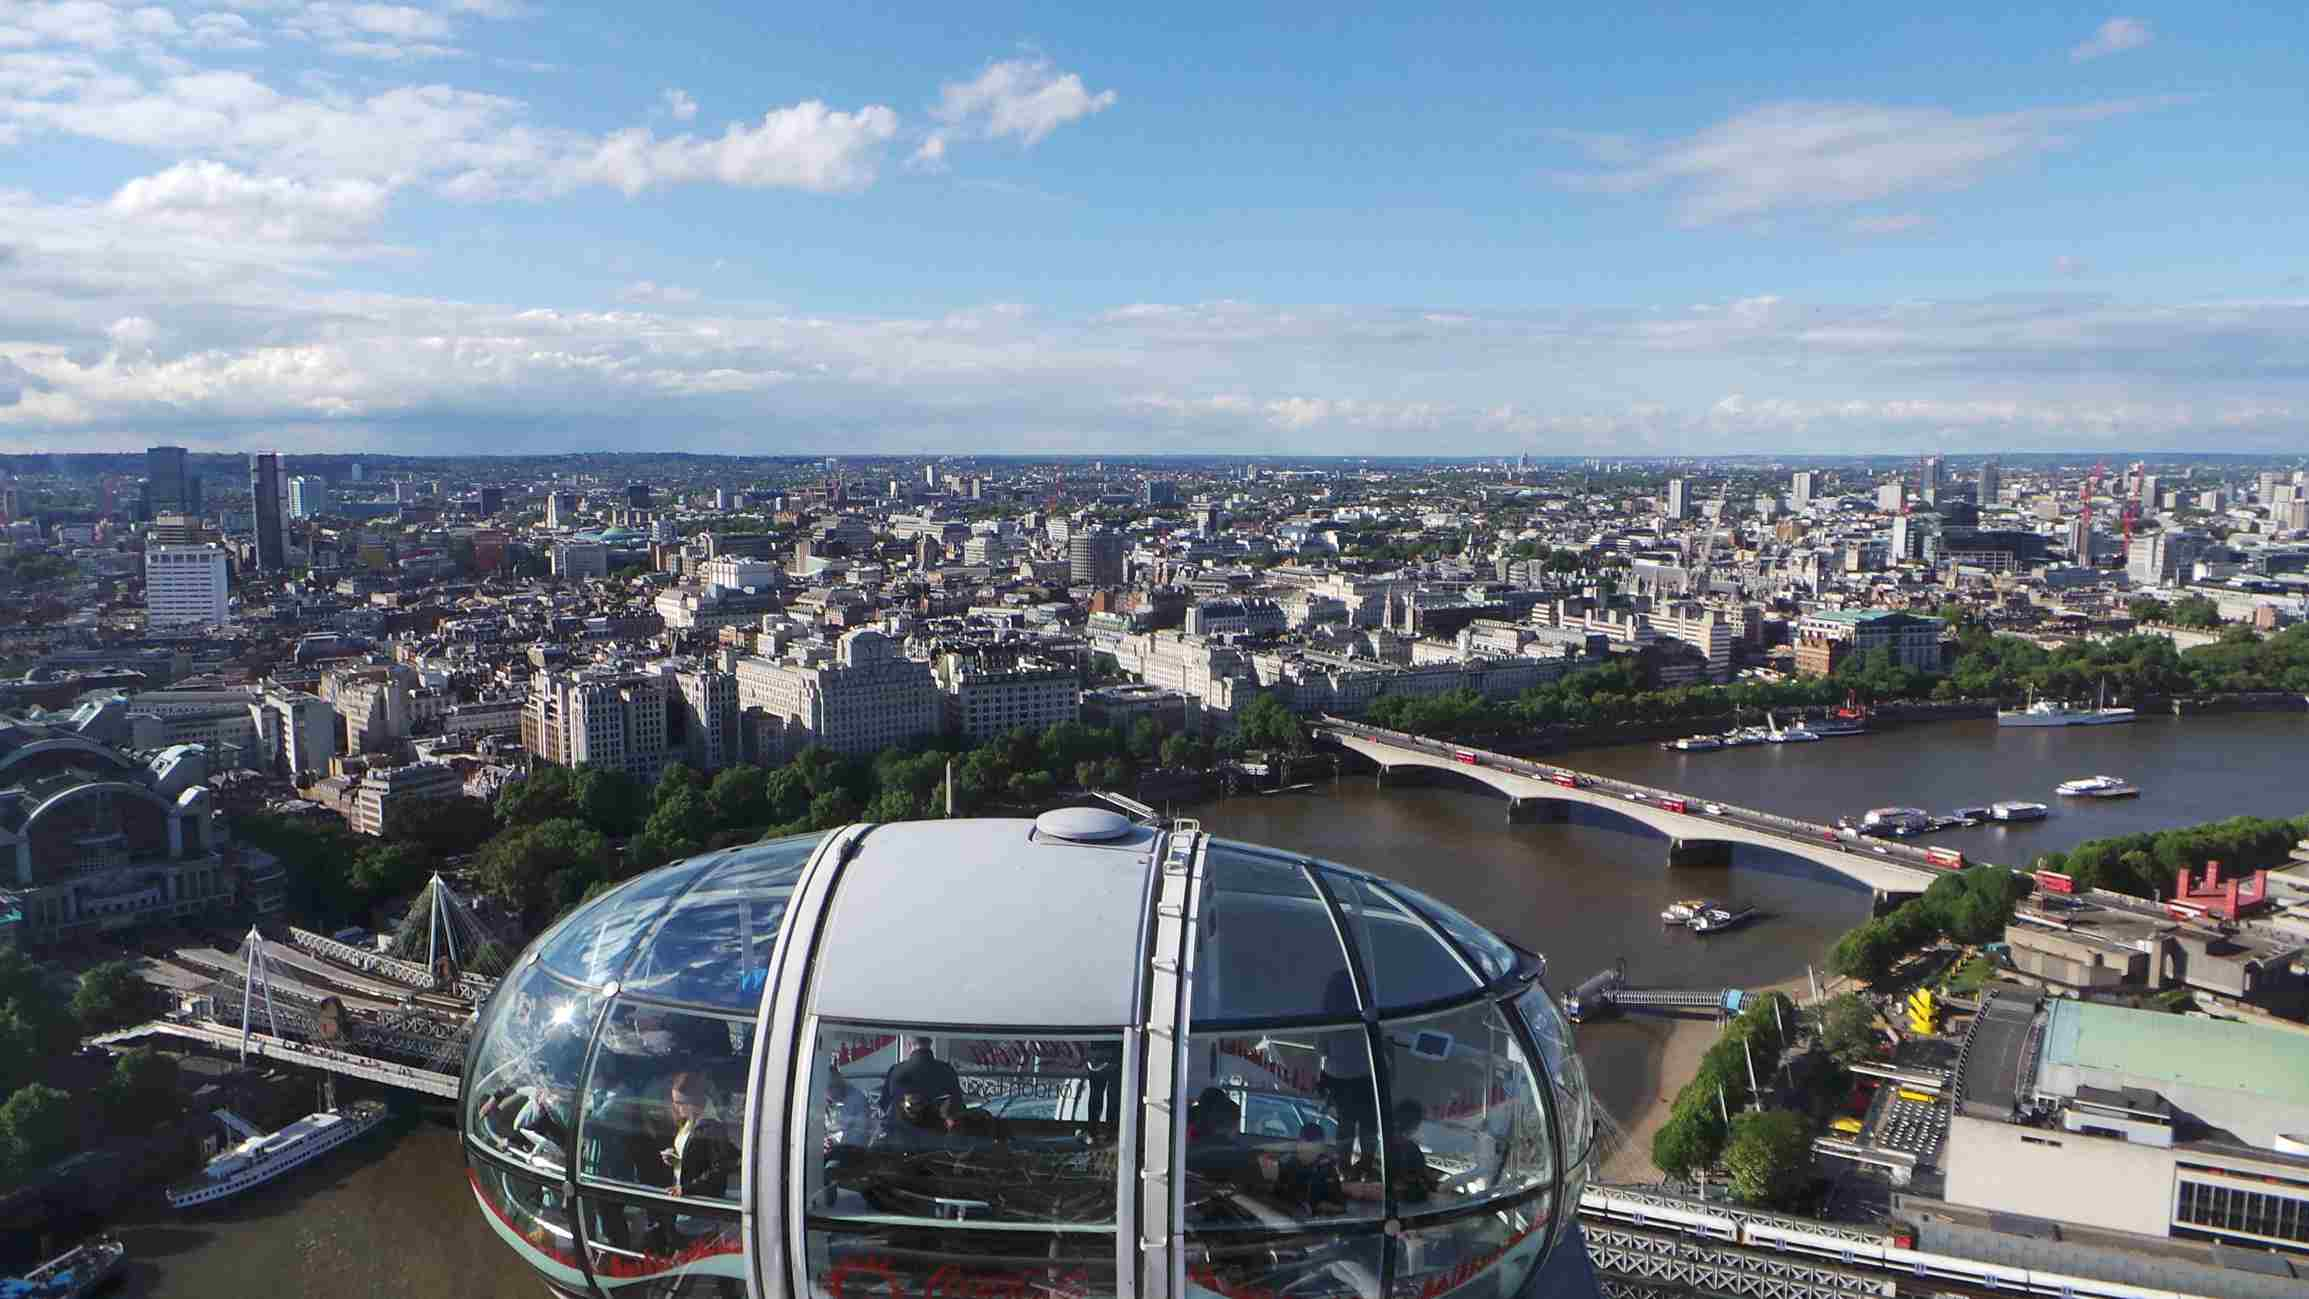 High-angle view of wheel at Coca-Cola London Eye against the London sky.